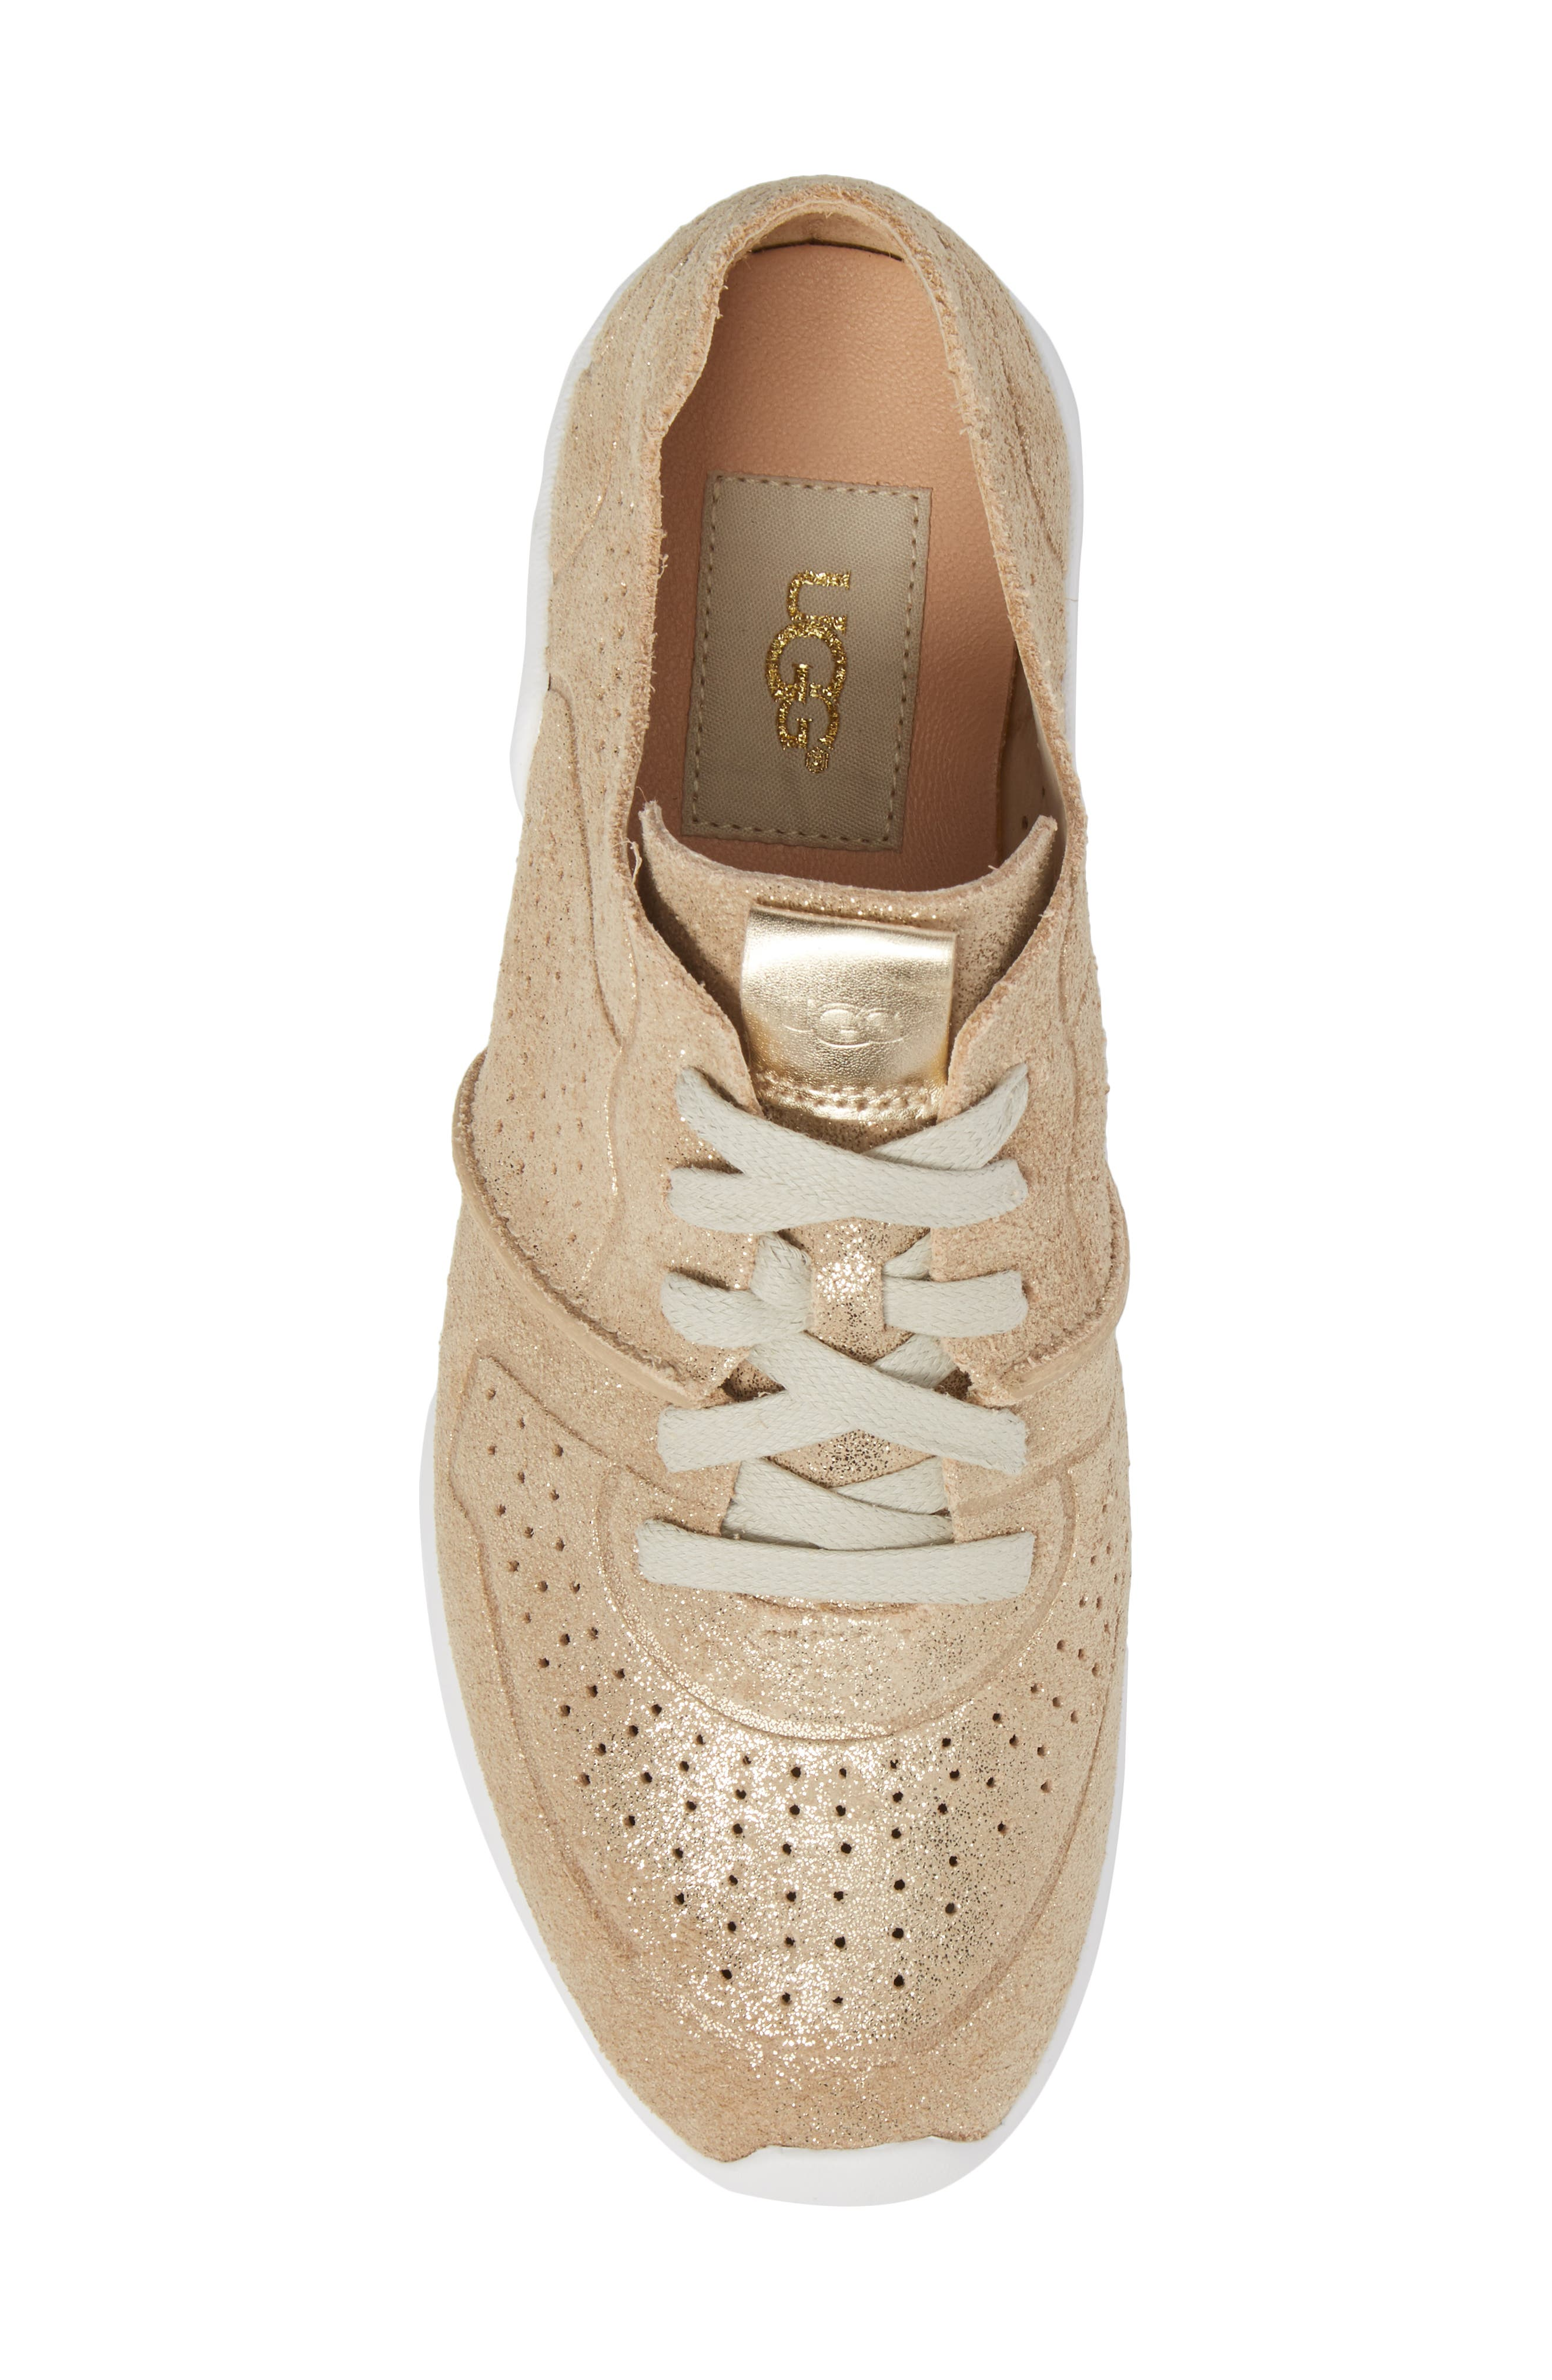 UGG<SUP>®</SUP>, Tye Stardust Sneaker, Alternate thumbnail 5, color, GOLD LEATHER